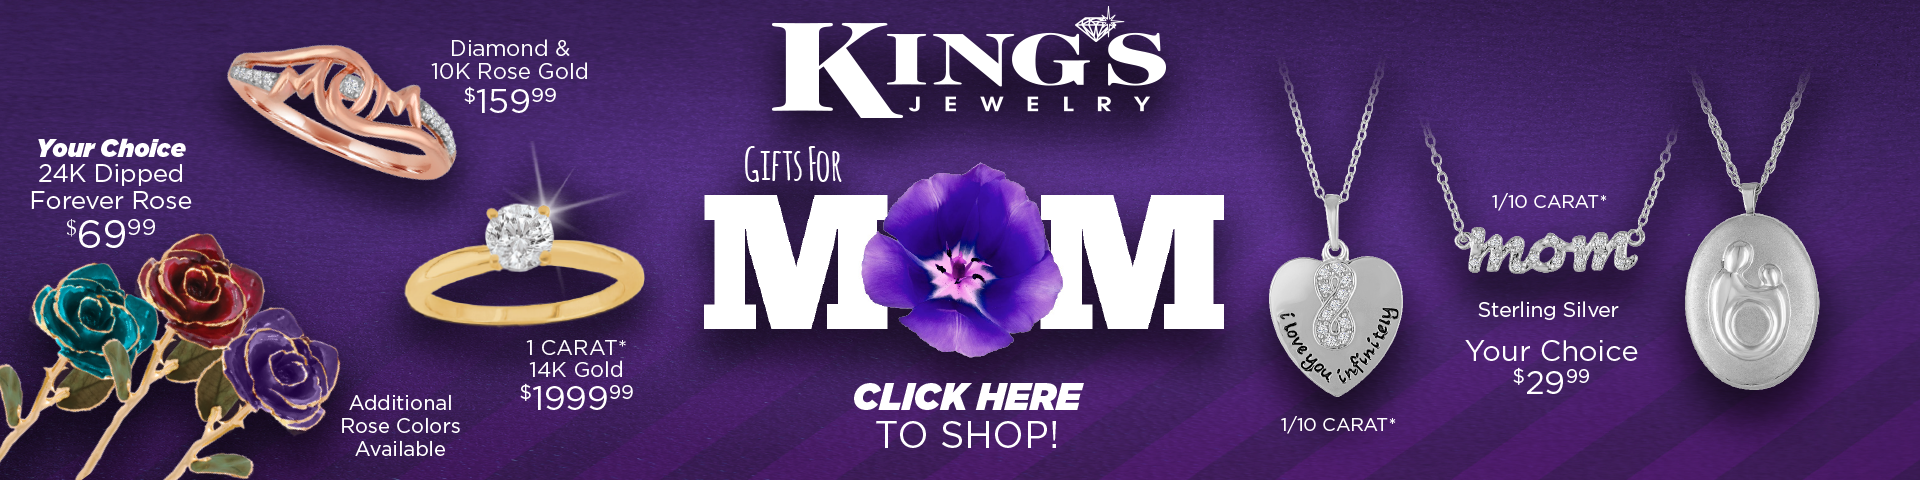 Kings Mother's Day Giftbook 2016